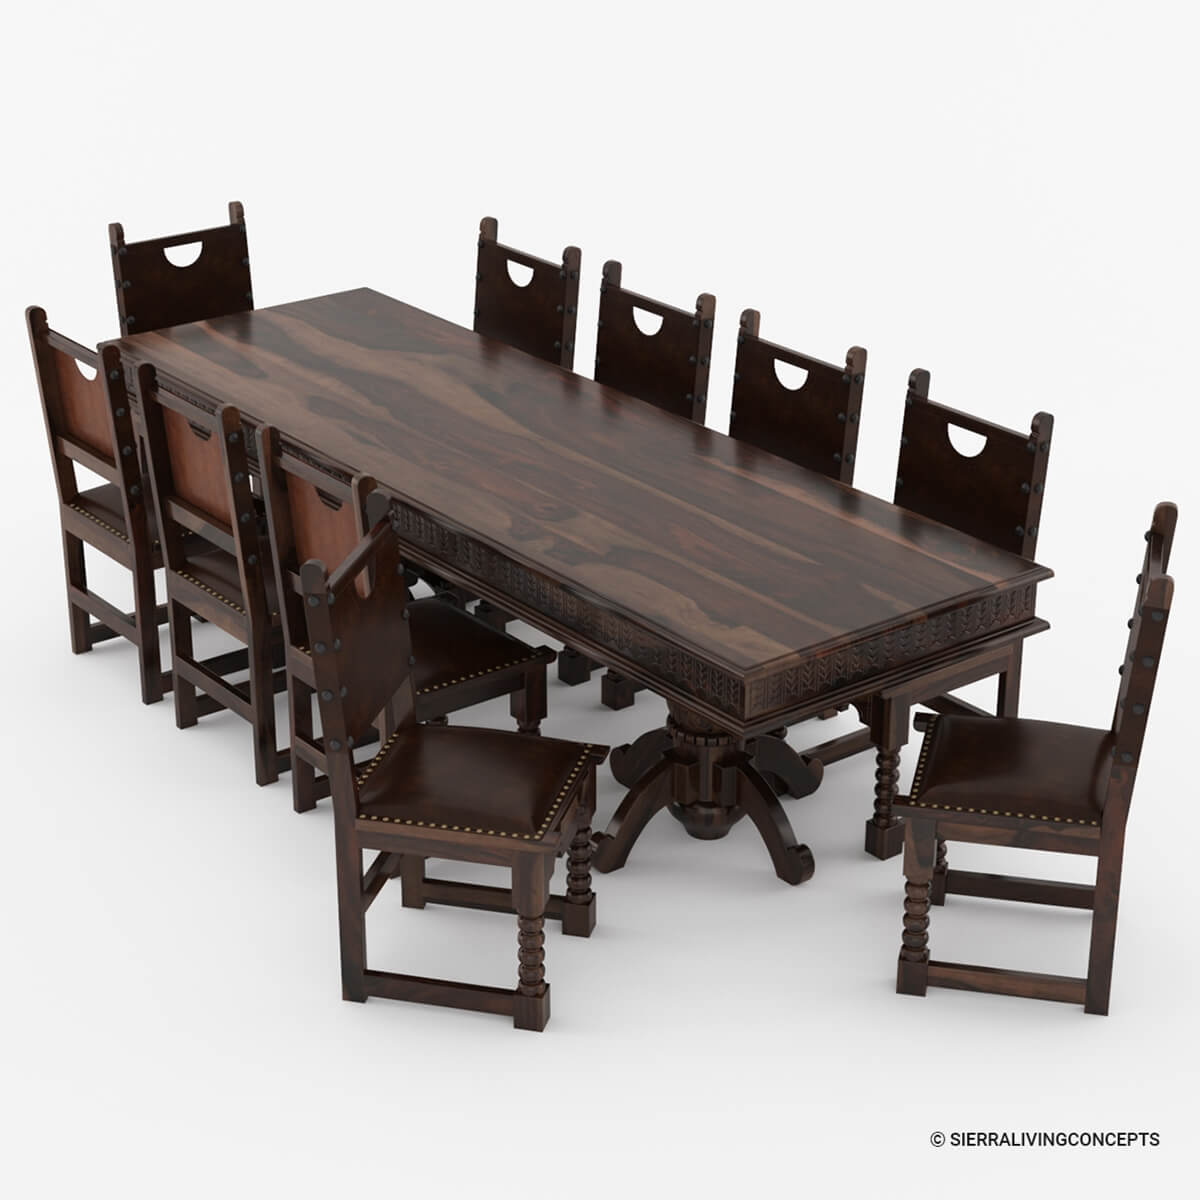 Nottingham Solid Wood Large Rustic Dining Room Table Chair Set : 13351 from www.sierralivingconcepts.com size 1200 x 1200 jpeg 417kB